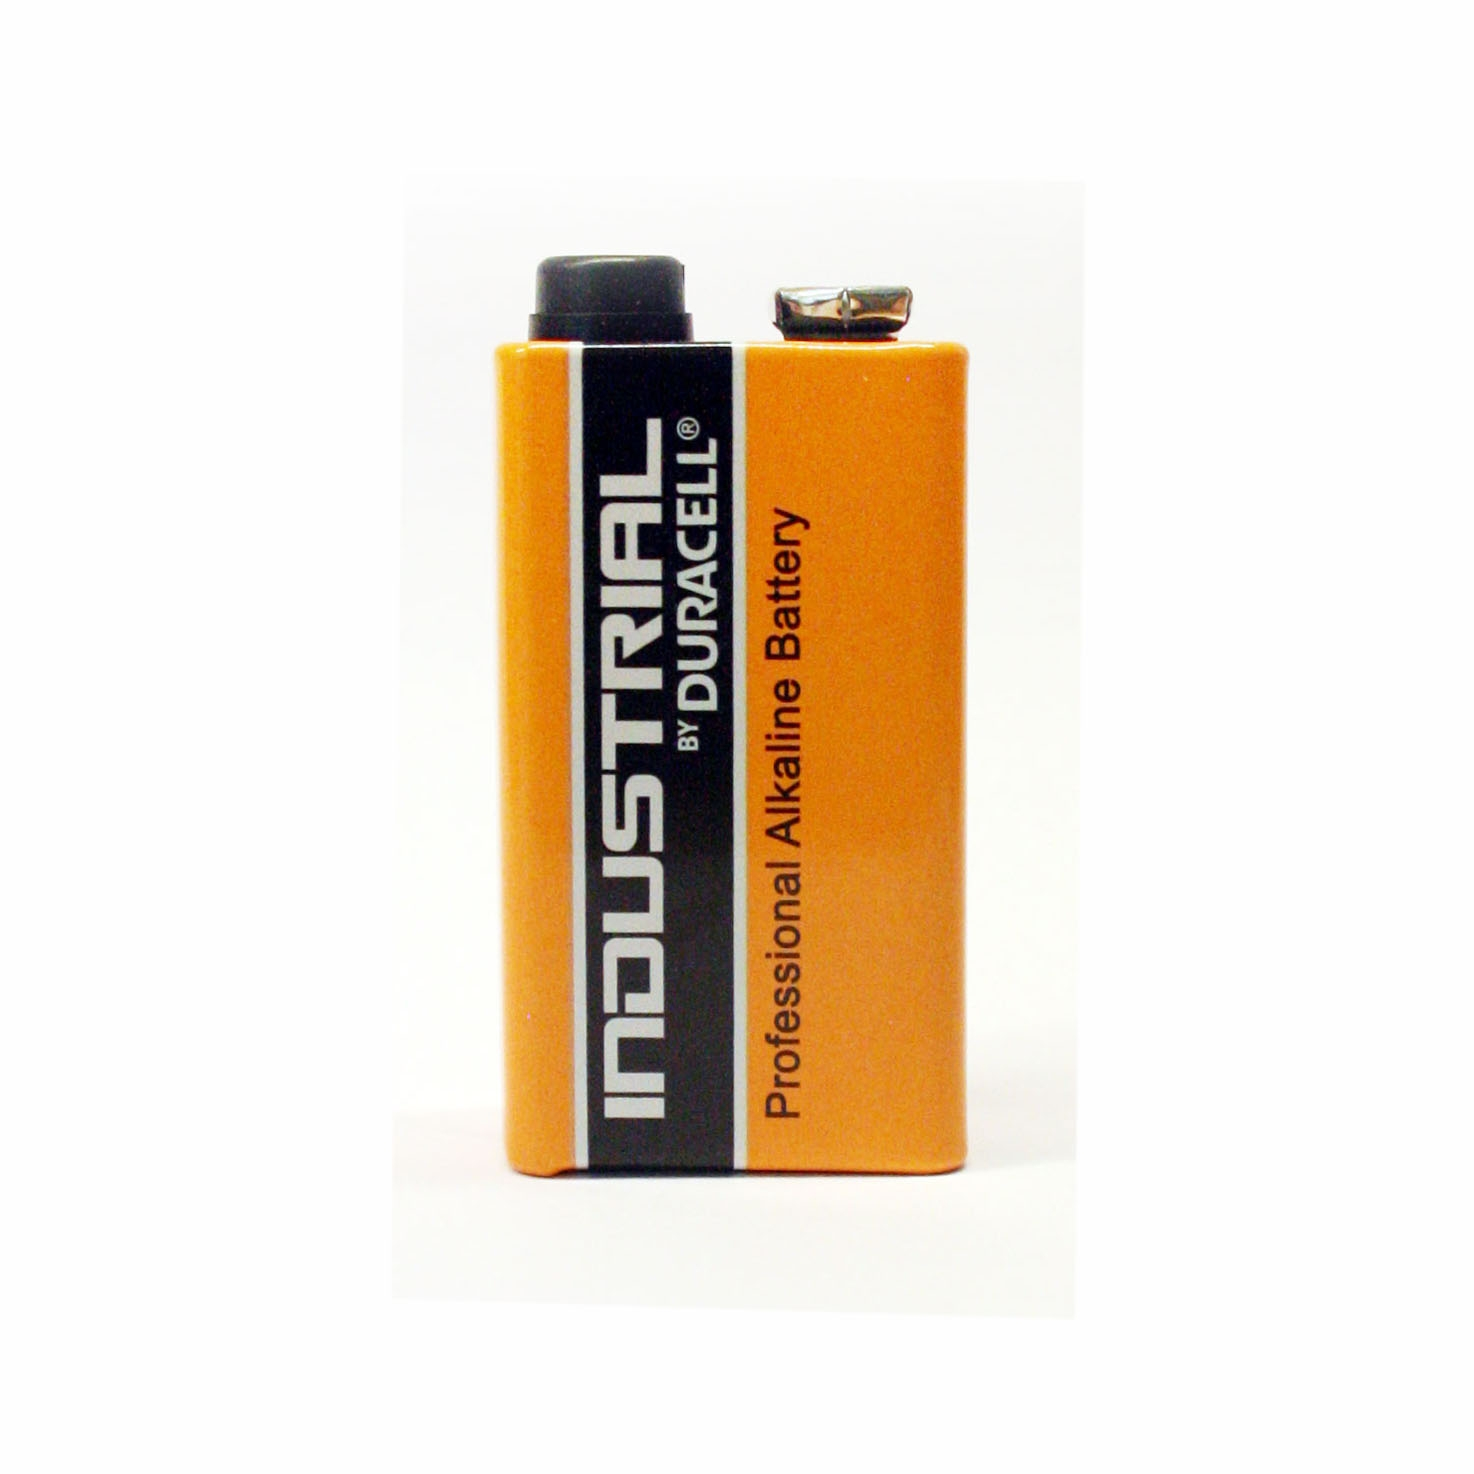 6LR-61 Duracell INDUSTRIAL